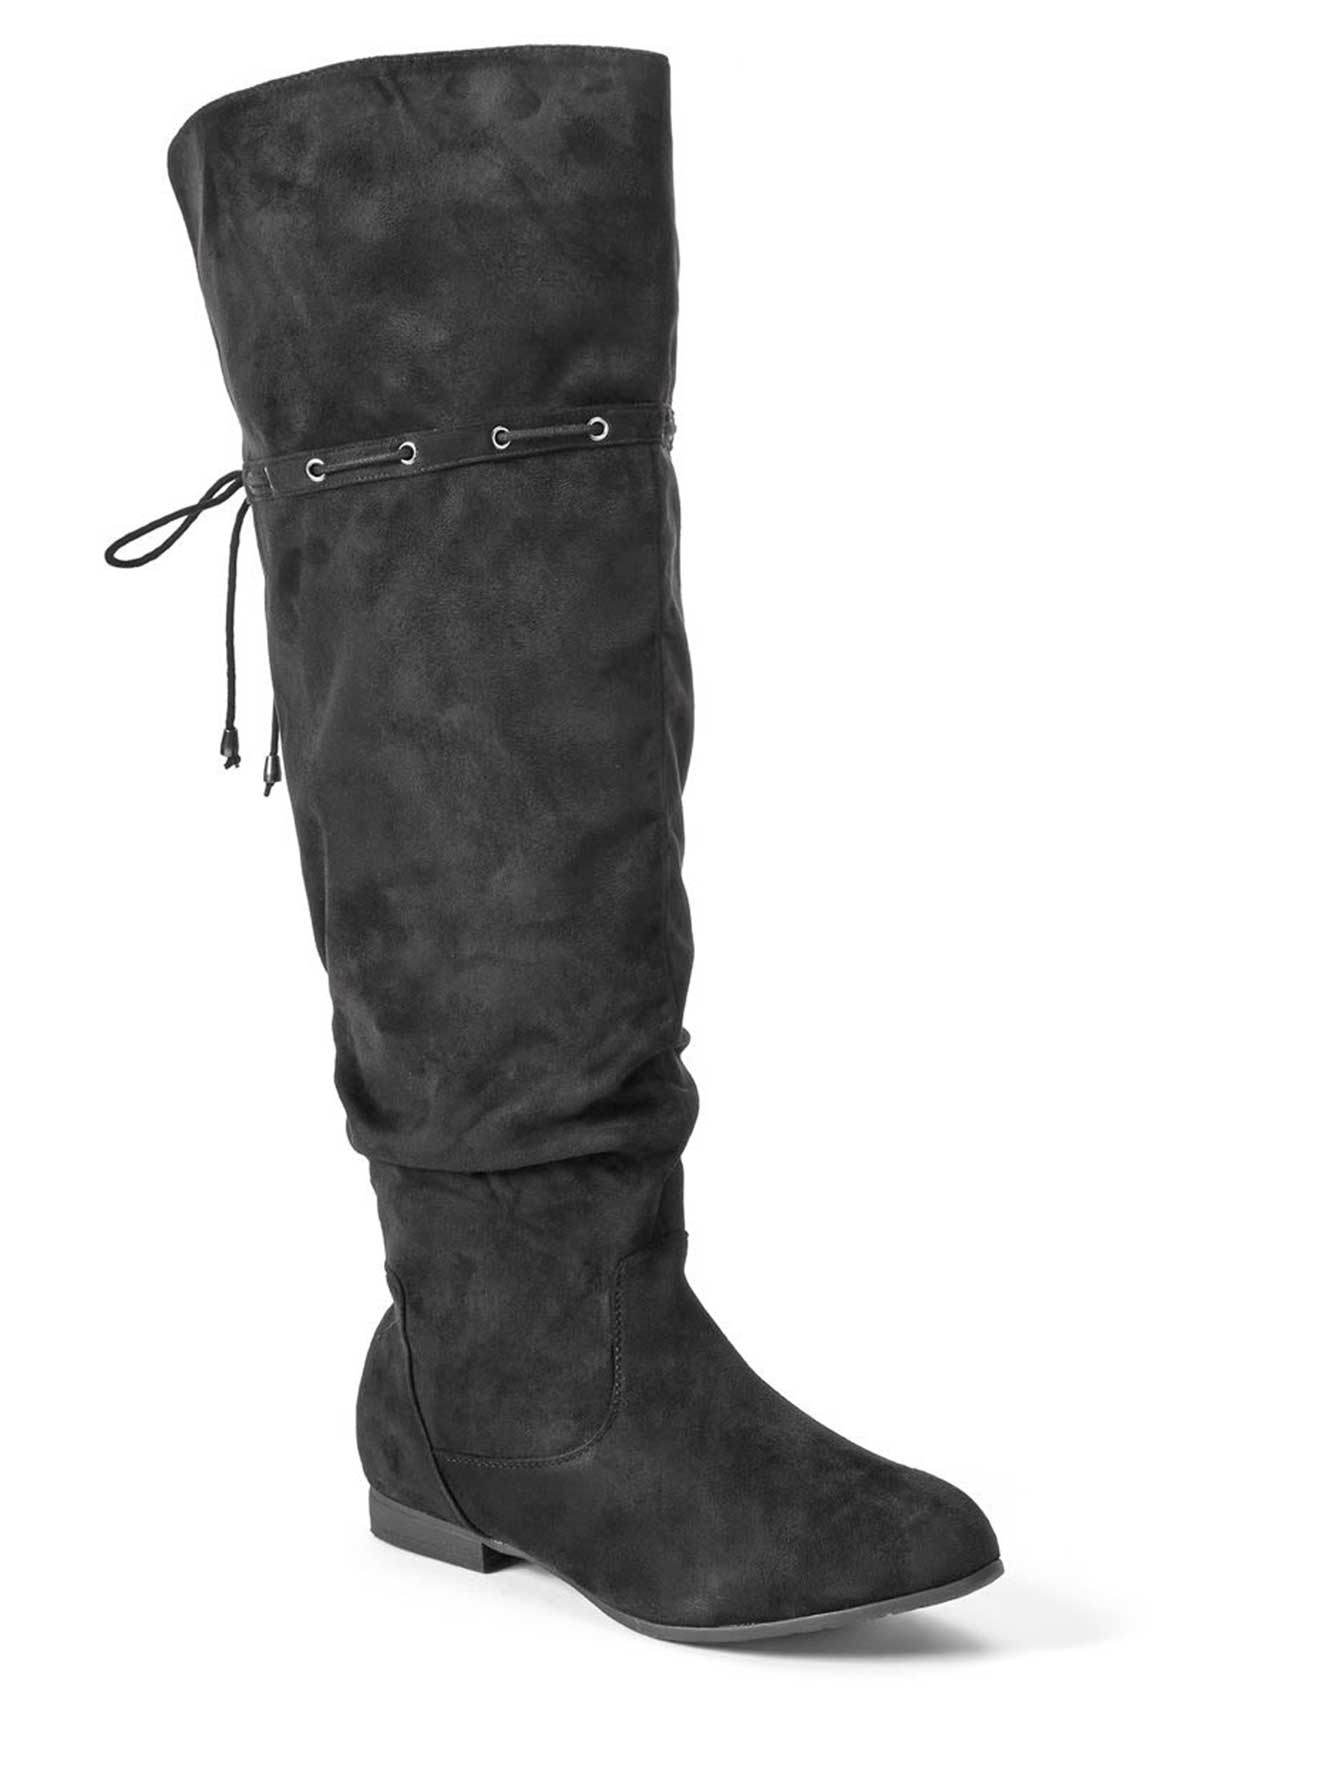 Kendra Over-the-Knee Boots